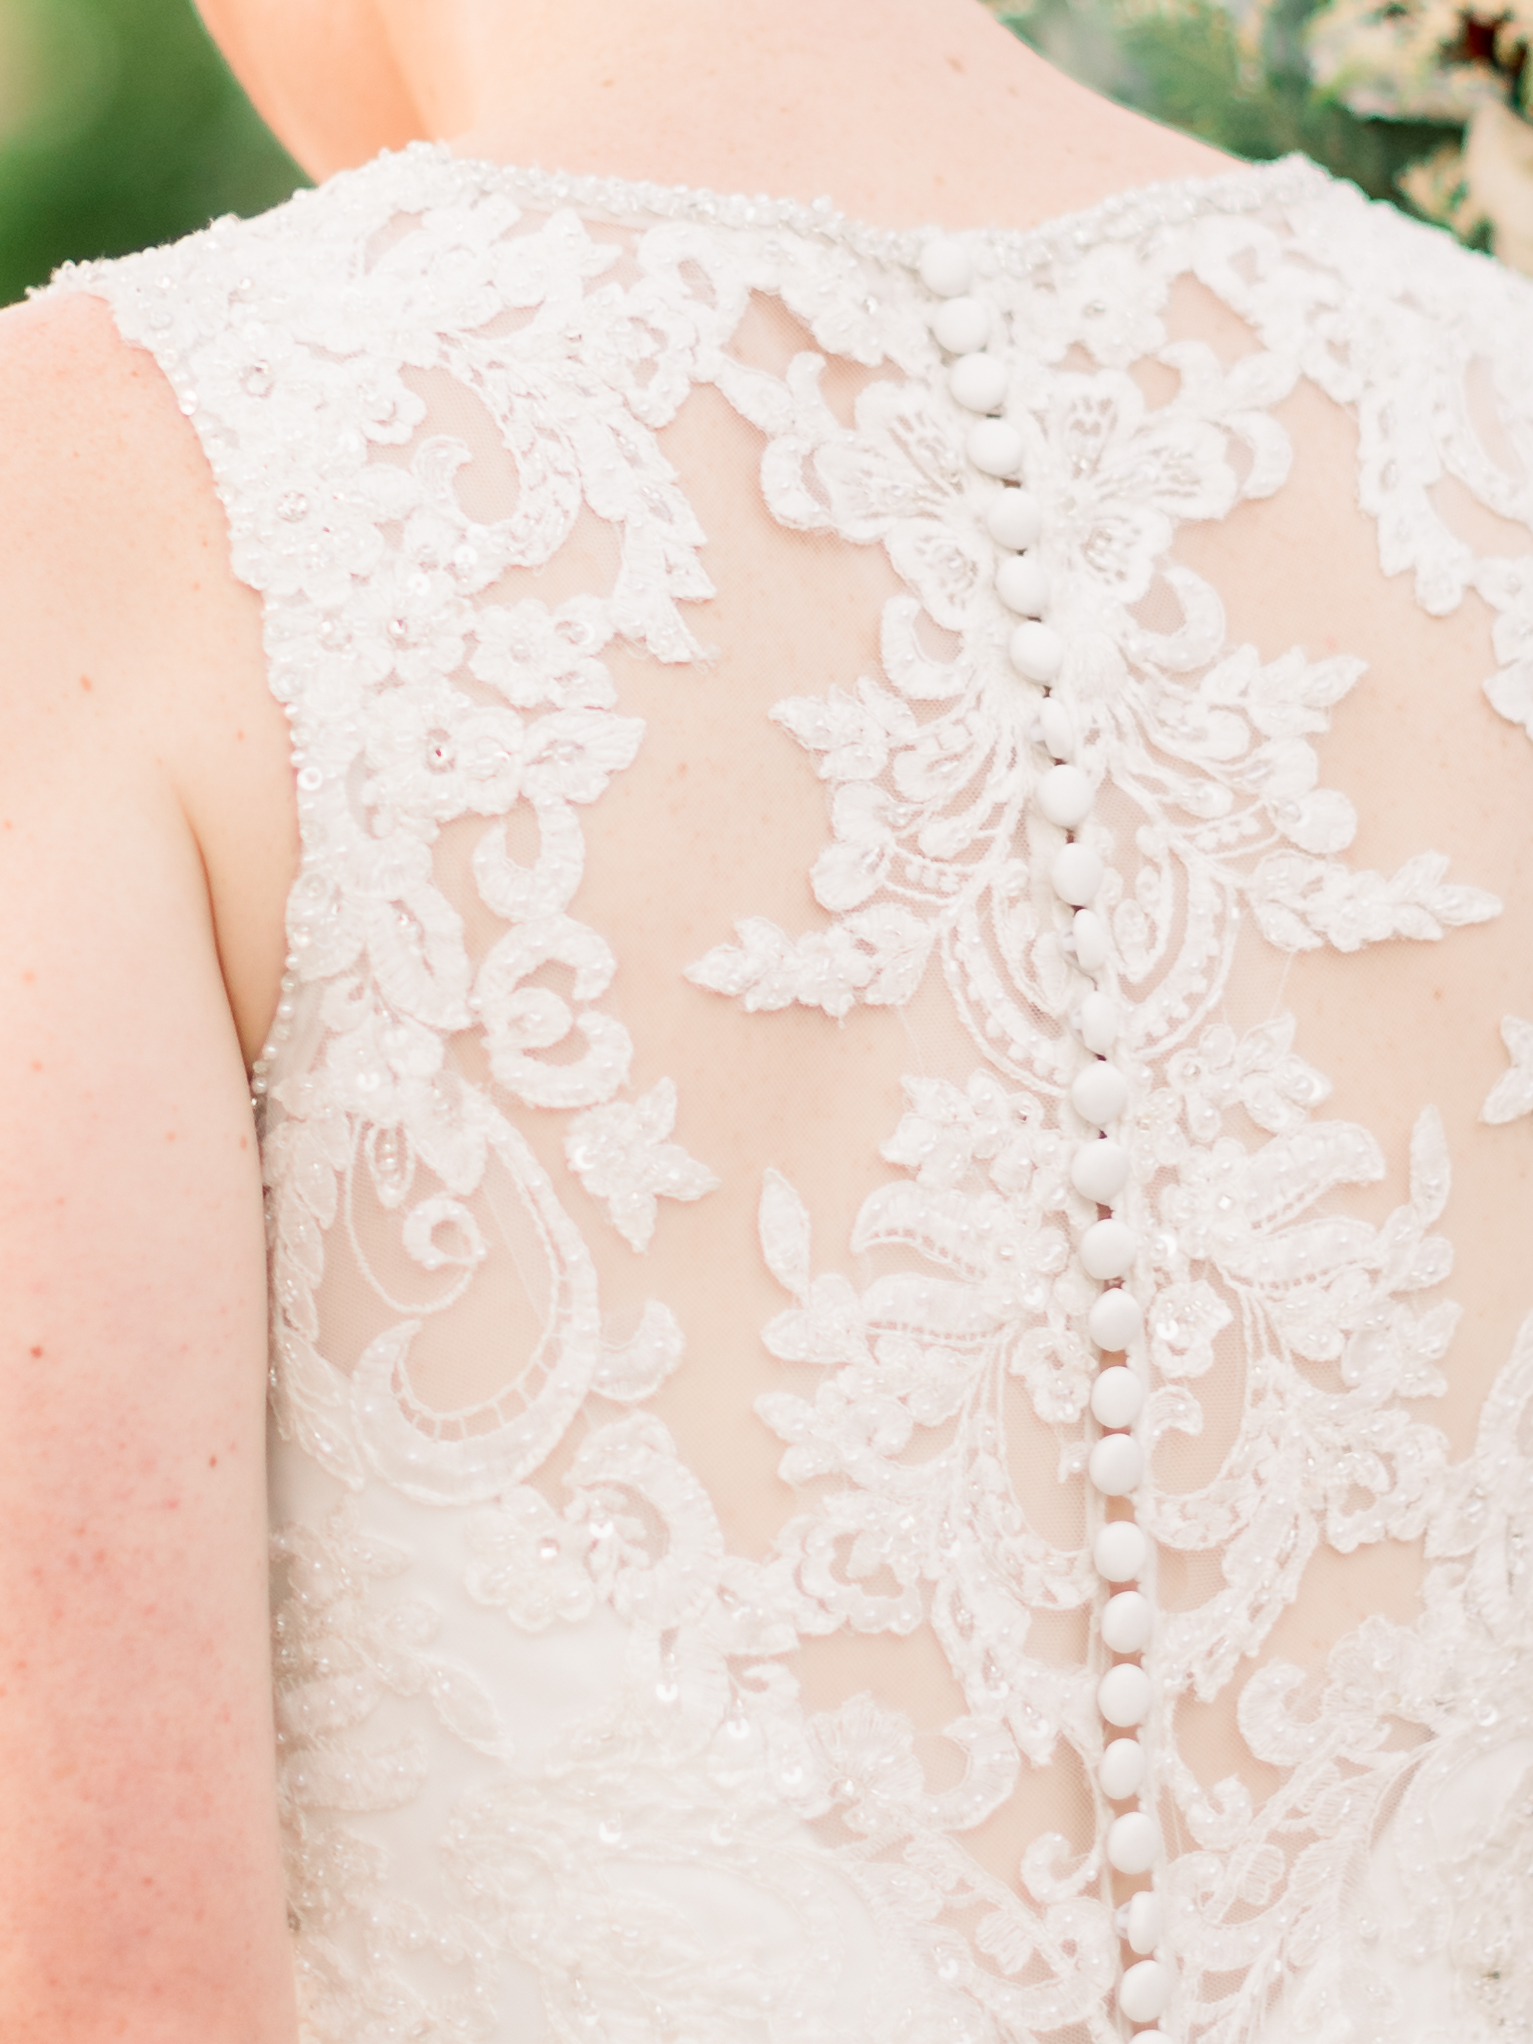 lace-detail-of-wedding-gown.jpg